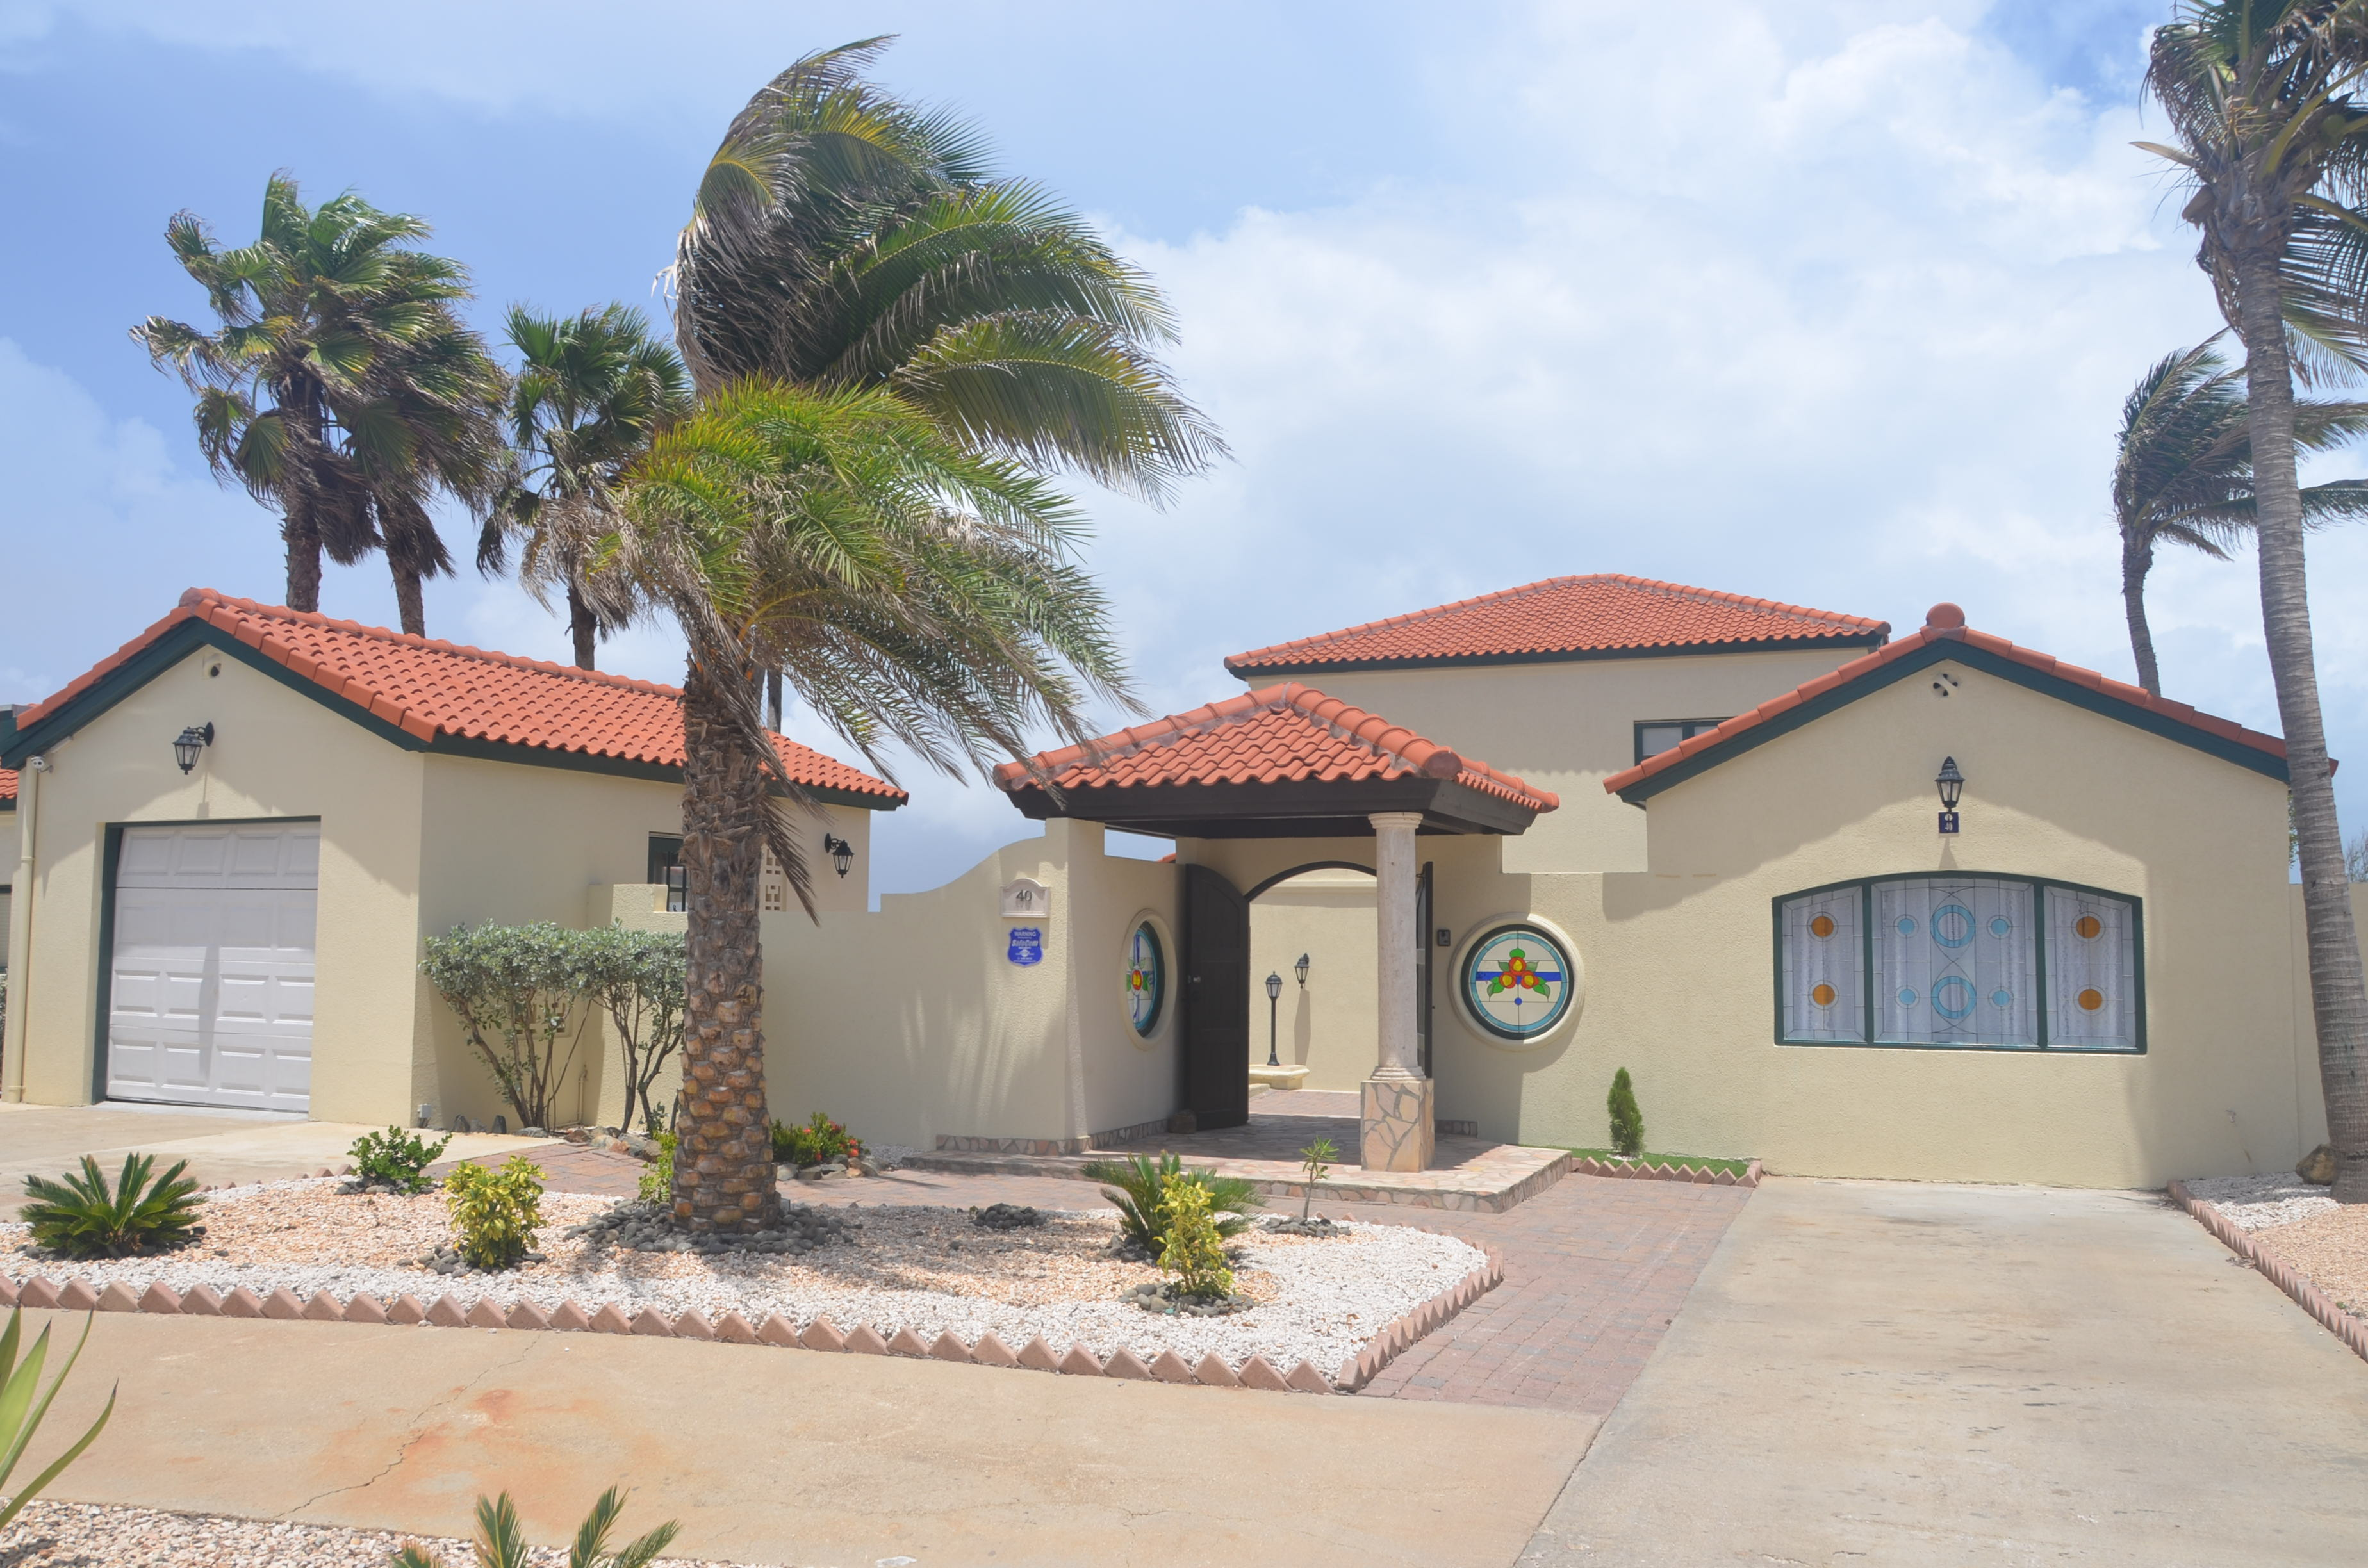 Single Family Home for Sale at Mesa Vista Villa Malmok, Aruba